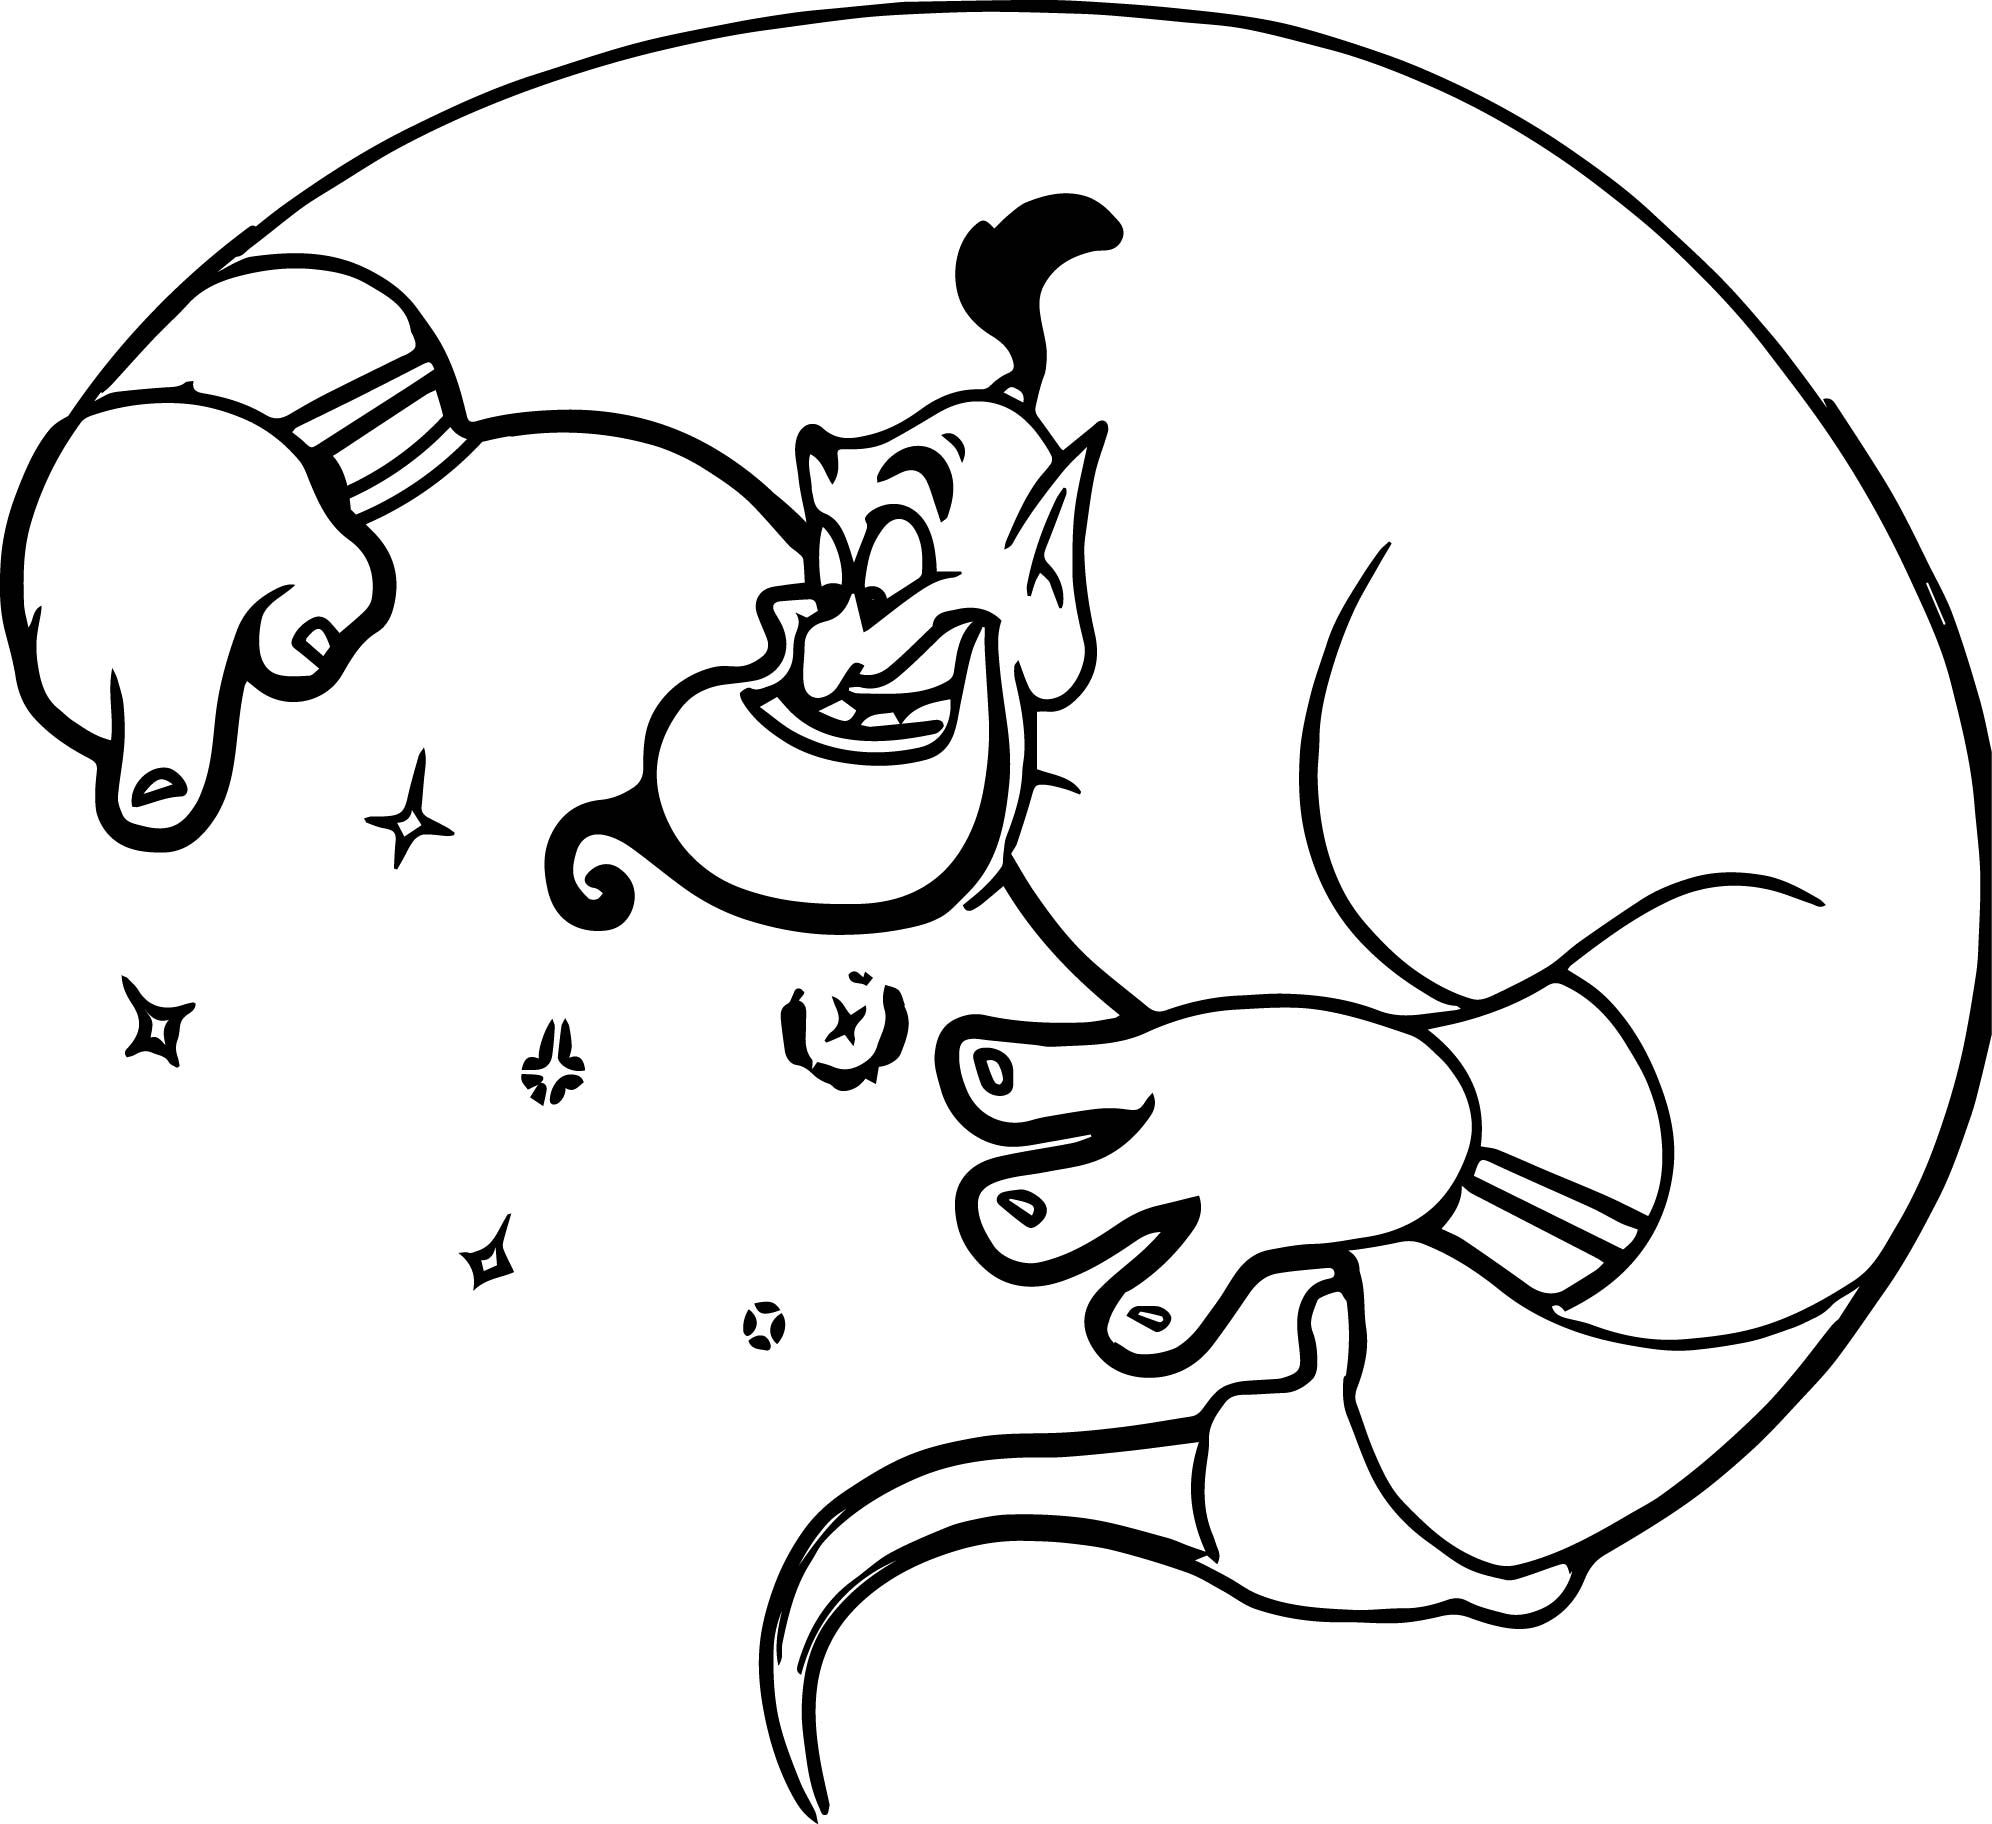 Genie Aladdin Free Coloring Pages Disney Coloring Pages Free Coloring Pages Free Disney Coloring Pages